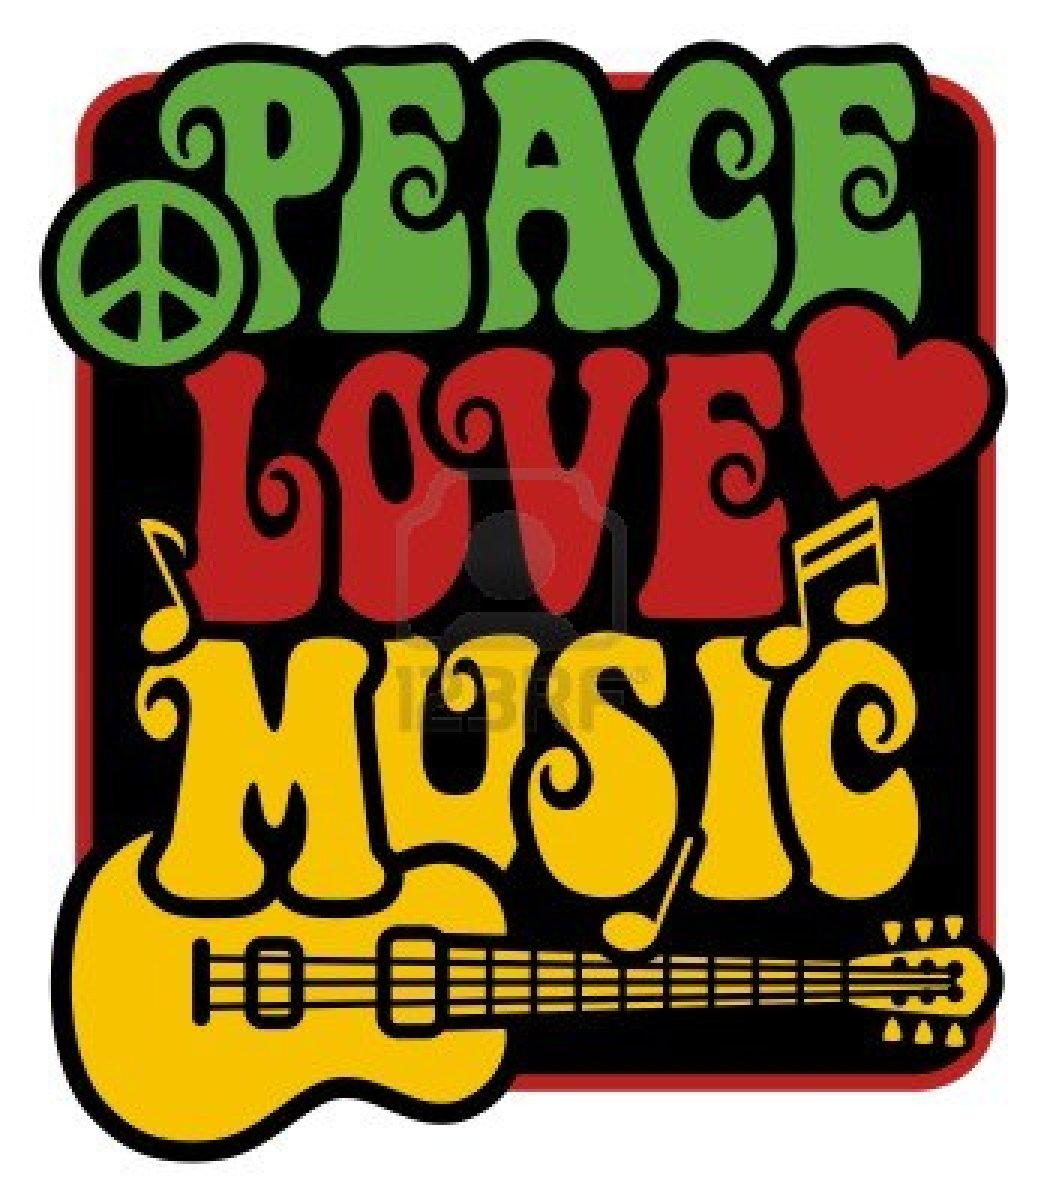 peace love music quotes quotesgram. Black Bedroom Furniture Sets. Home Design Ideas